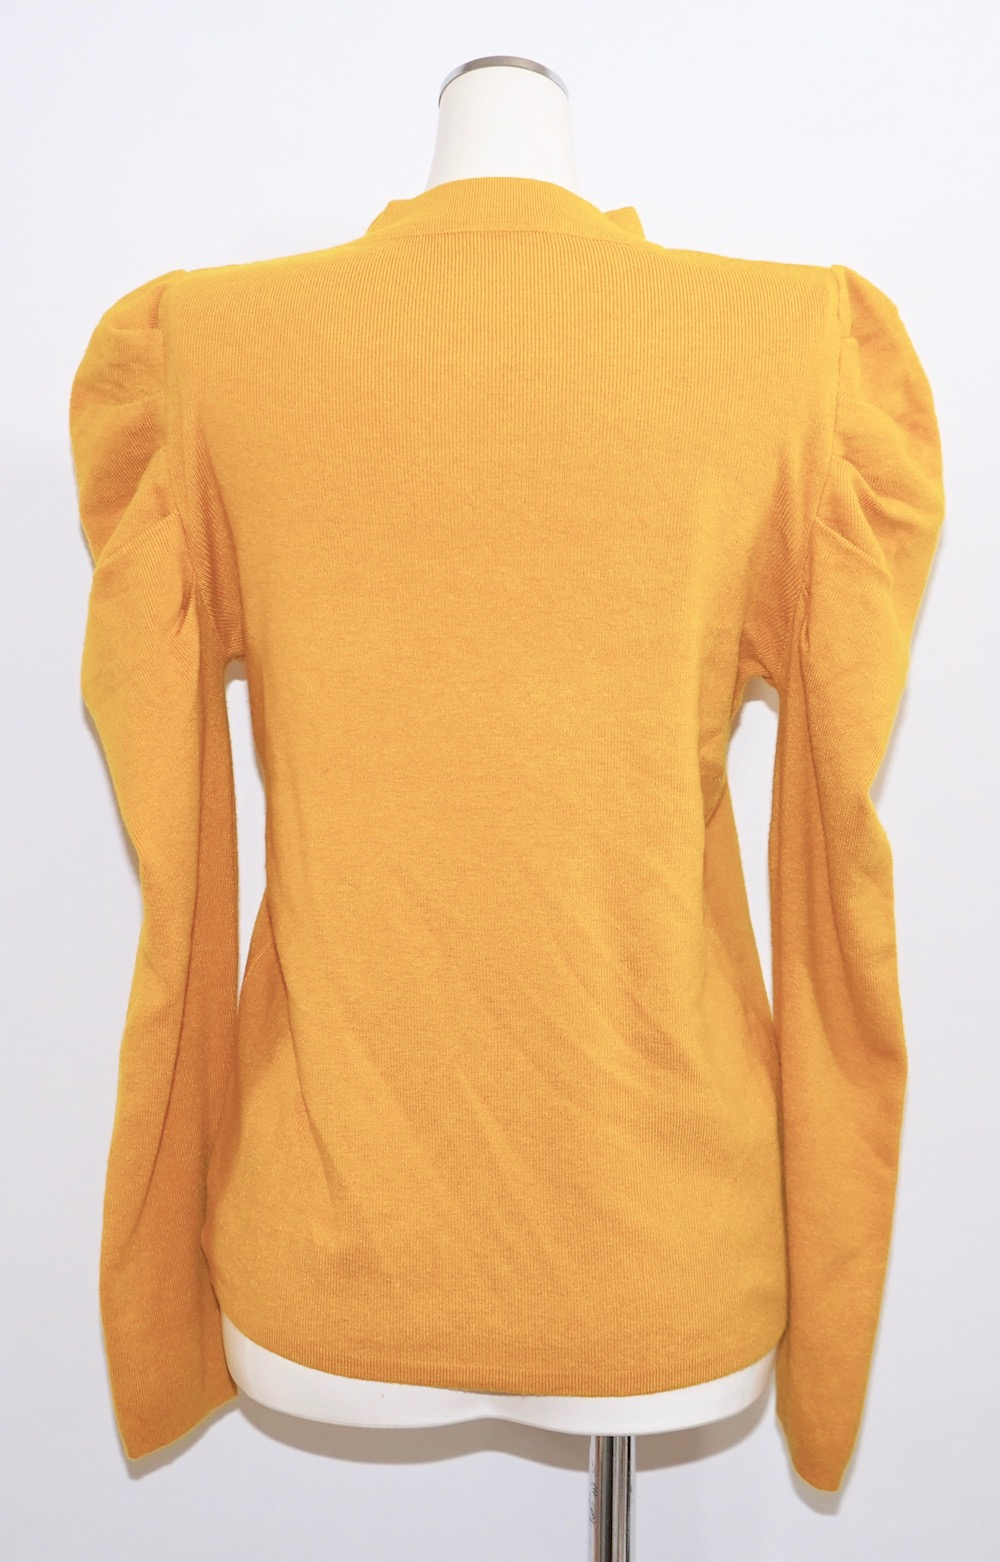 Basic Puff Shoulder Knit Tops (yellow)